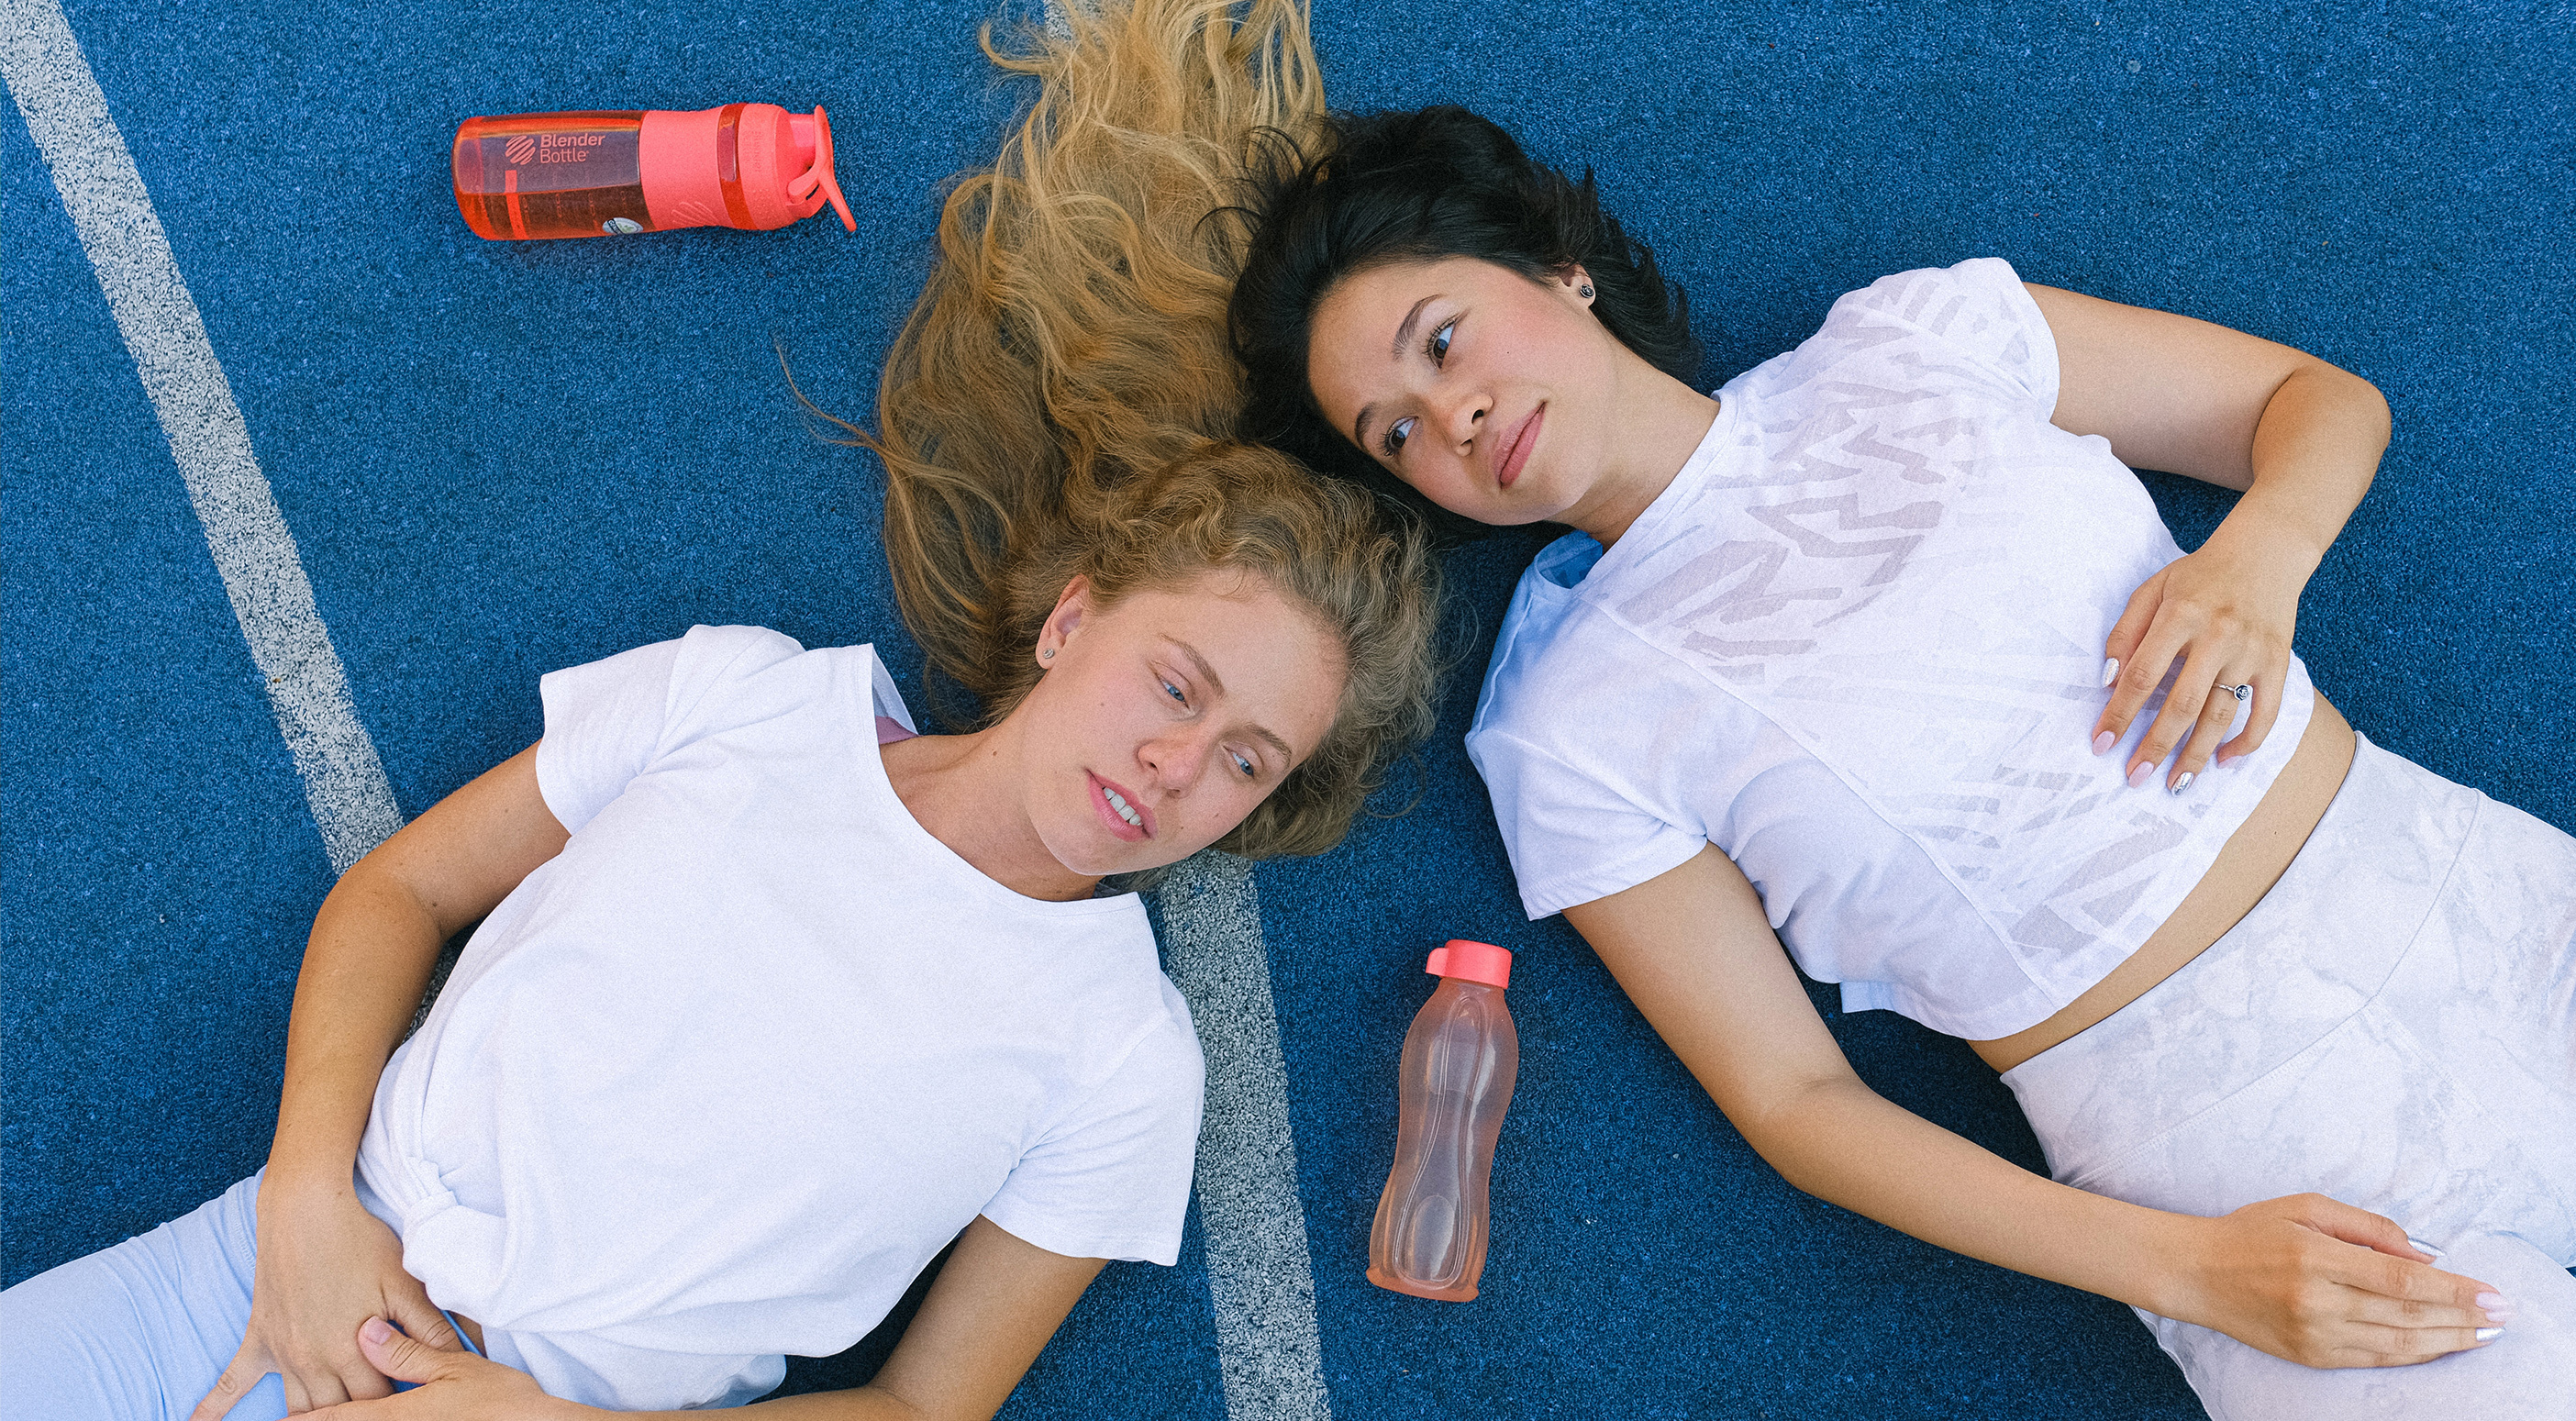 Two woman resting on the floor with gym clothes on